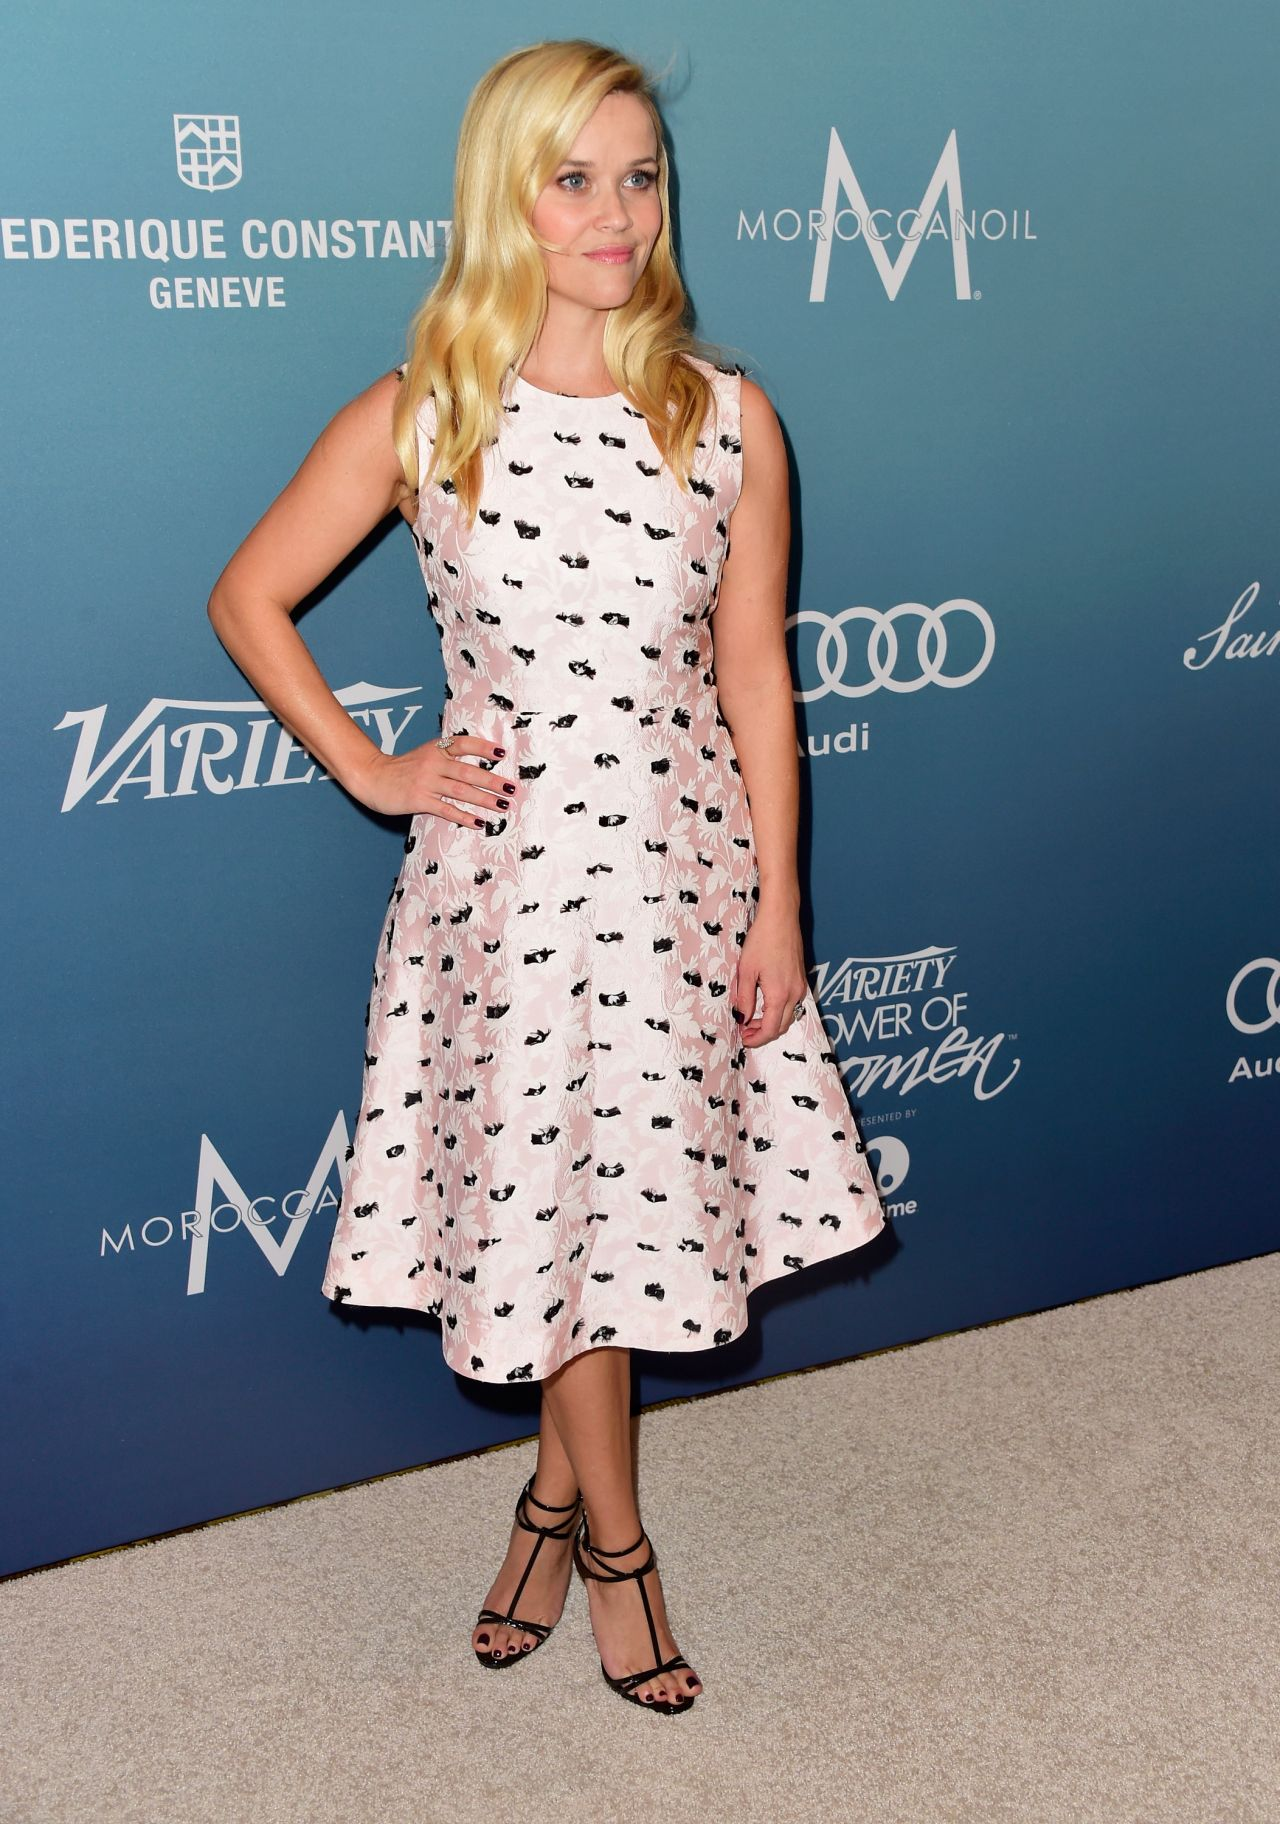 reese-witherspoon-variety-s-power-of-women-luncheon-in-beverly-hills-october-2015_3